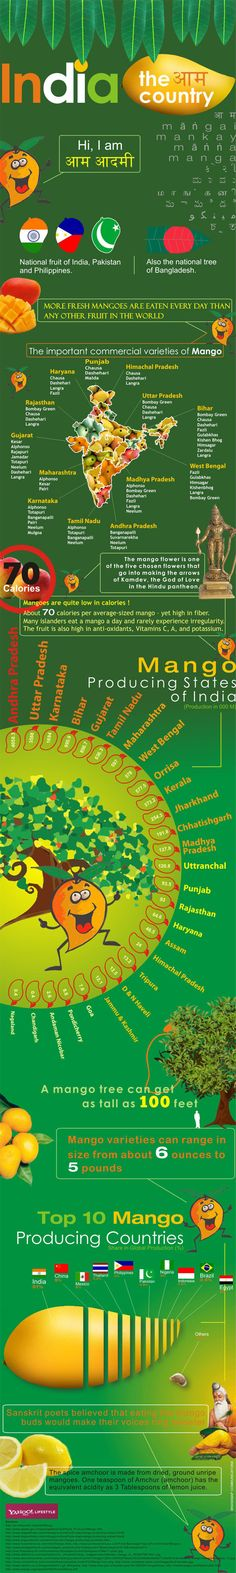 Mango Mela - A mango-licious graphic packed with trivia we bet you never knew!